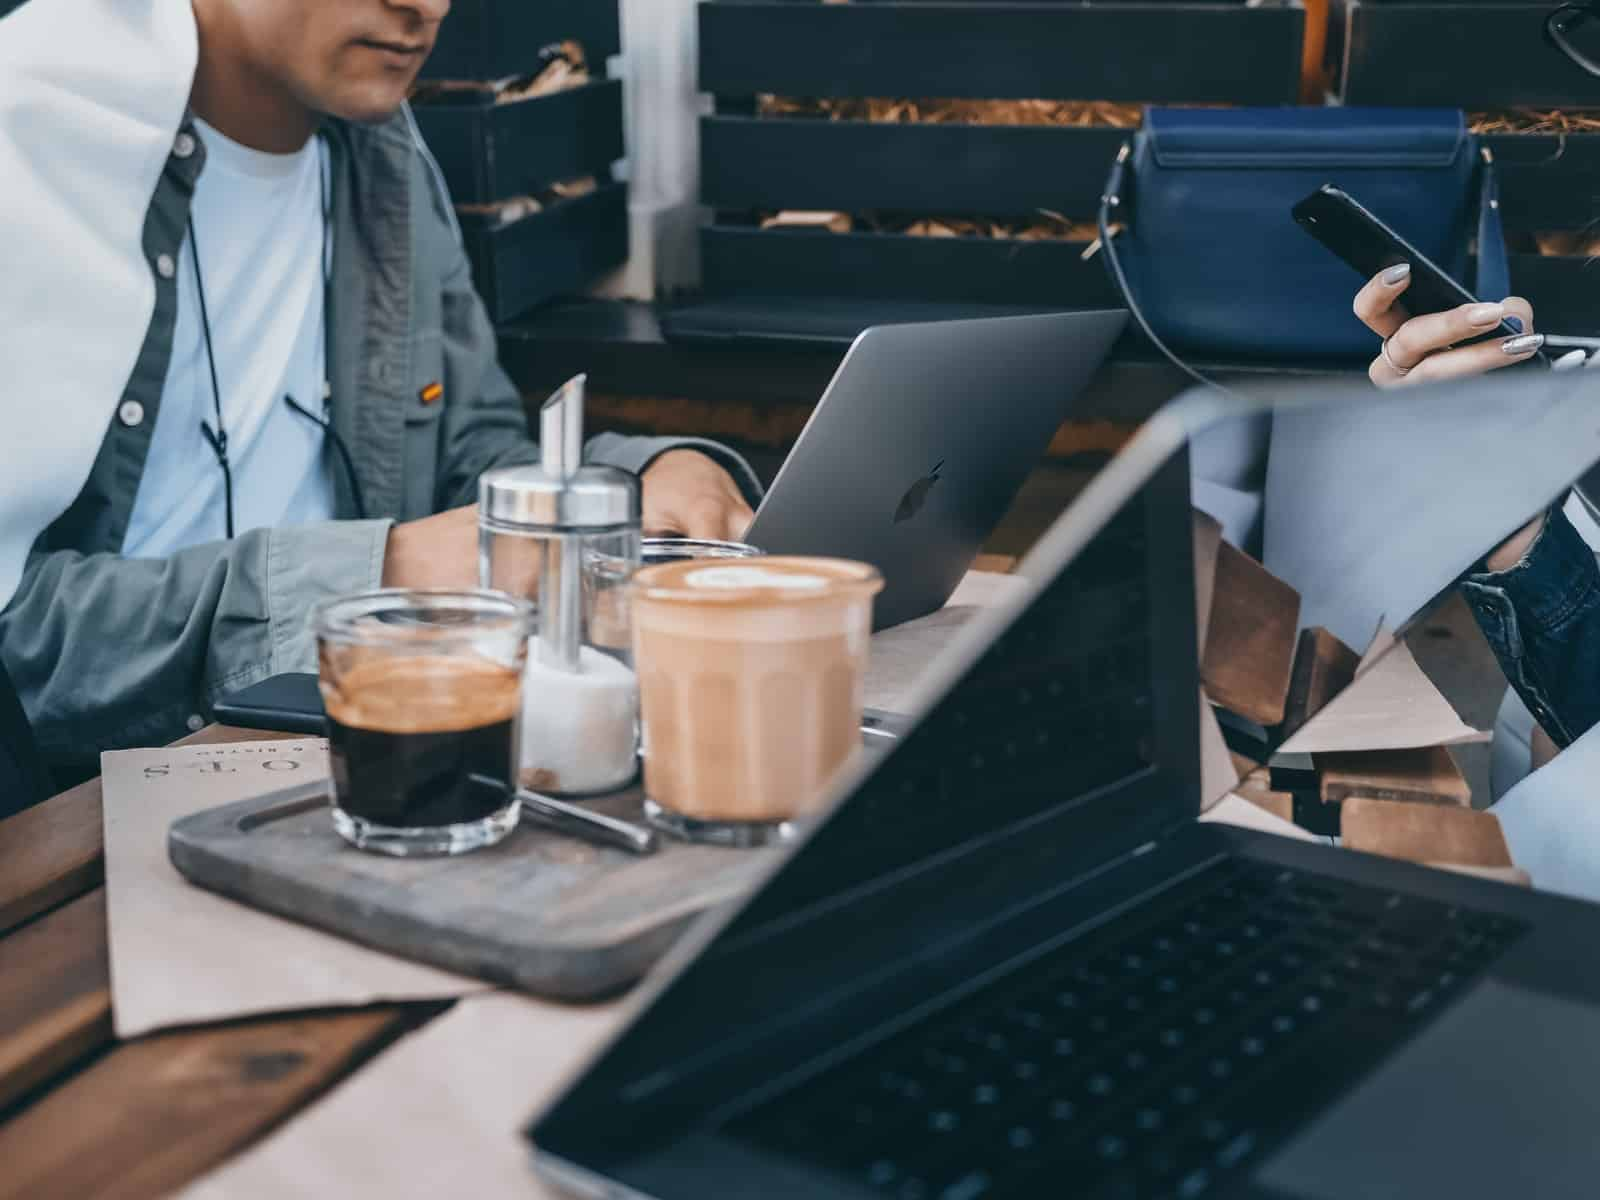 The Advantages of Having a Coffee Machine in the Workplace